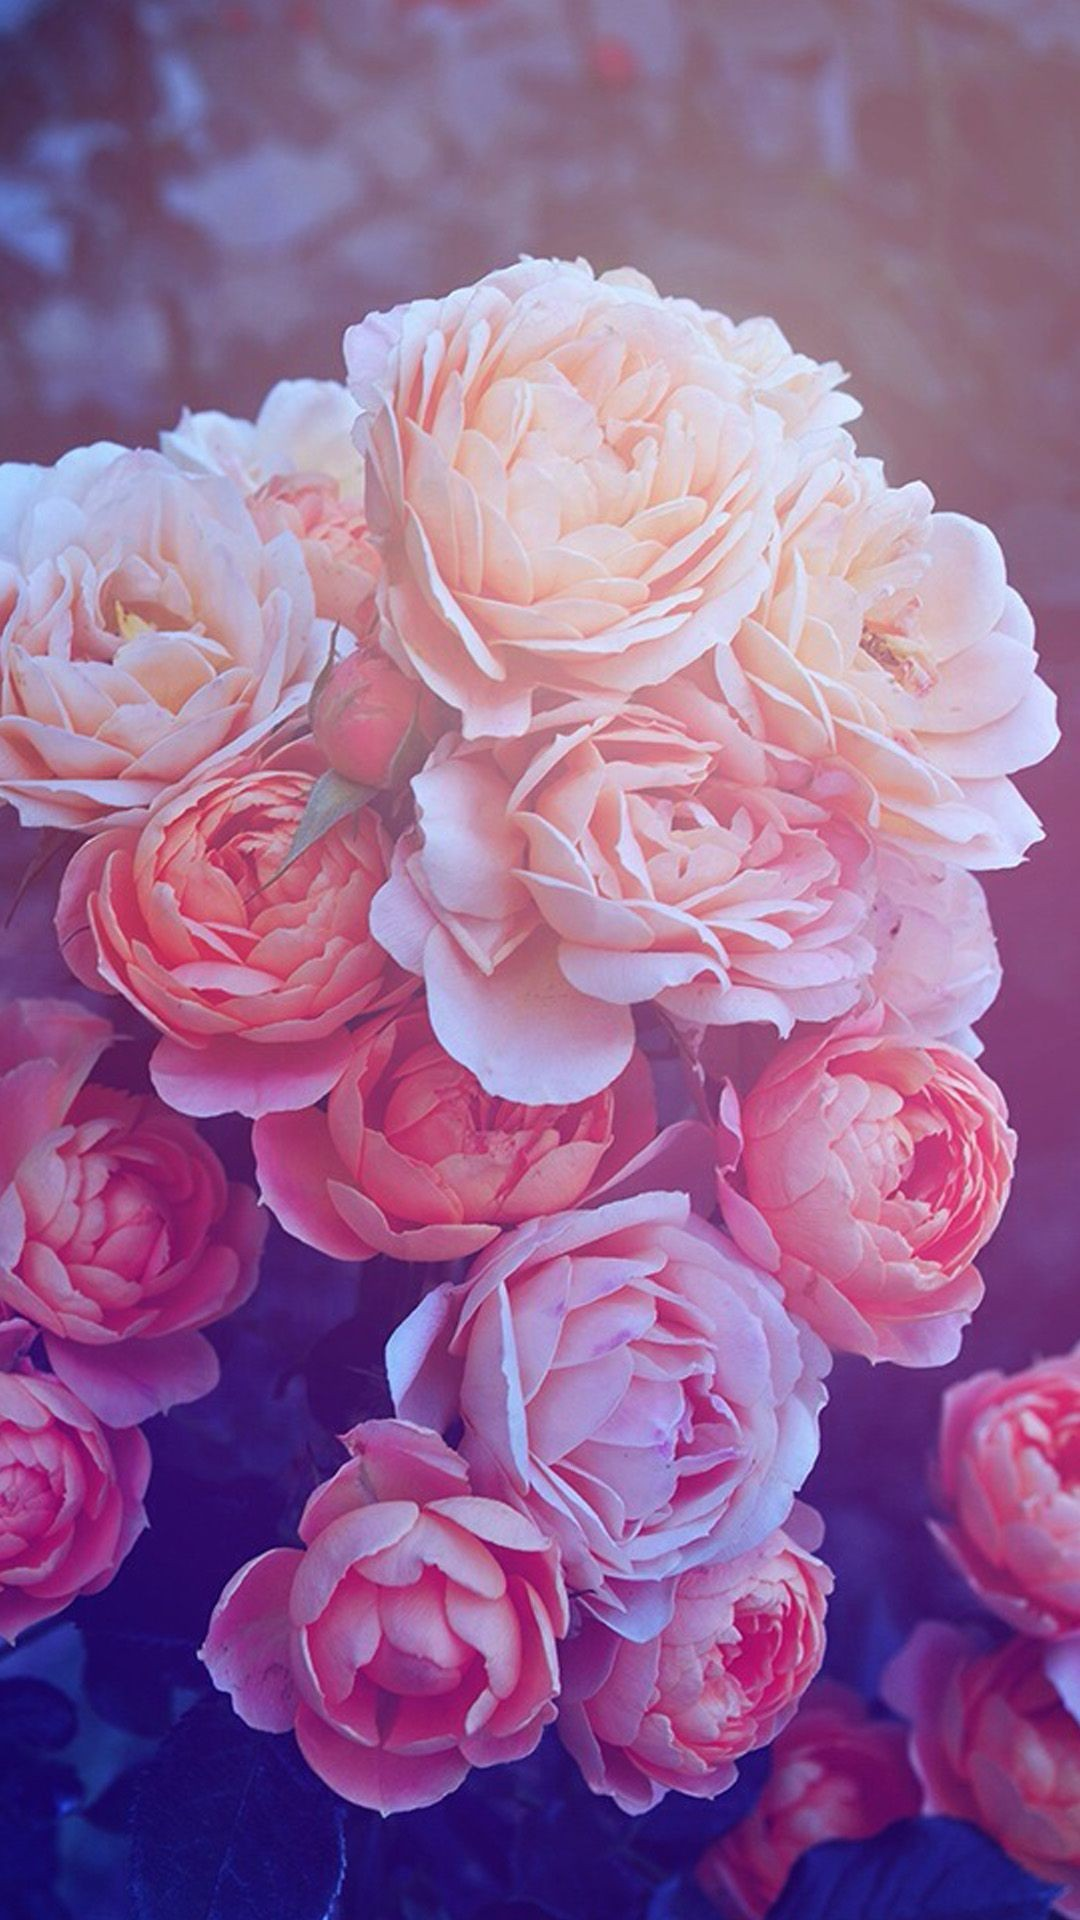 lovely hd wallpaper iphone galaxy elegant rose background wallpaper iphone of background for rose gold iphone 9a6ef6db6cef06eda7f61e28bcfb6f4c raw